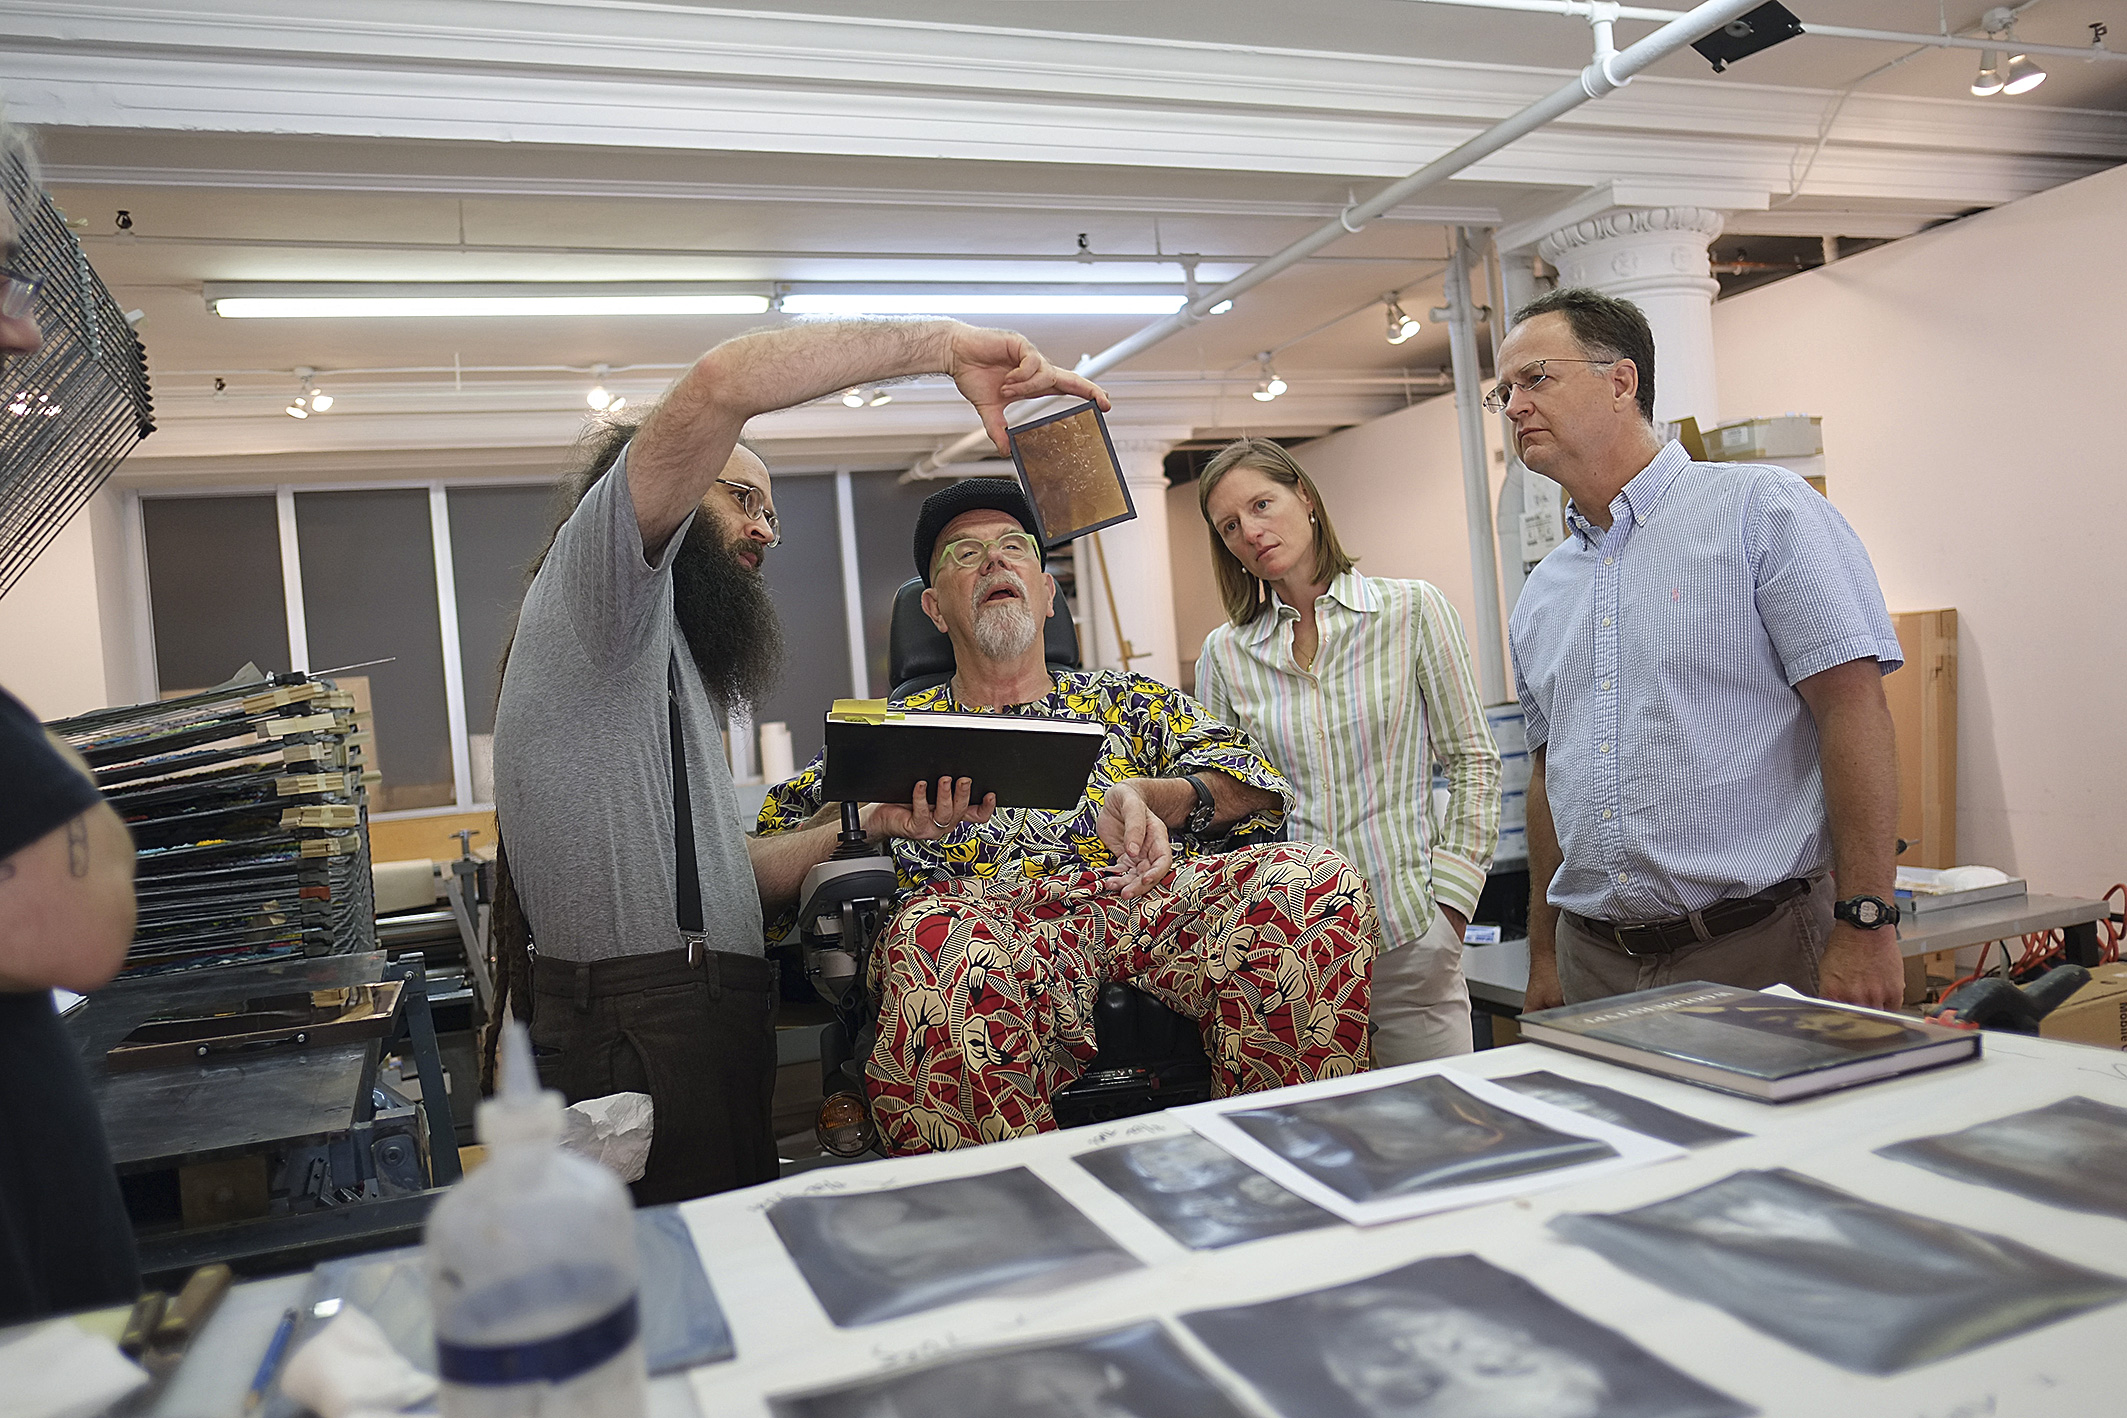 Barret Oliver, Chuck Close, Evelyn Lasry, and David Lasry reviewing the 'Brad, 2012' gelatin film (Photo by Terrie Sultan)